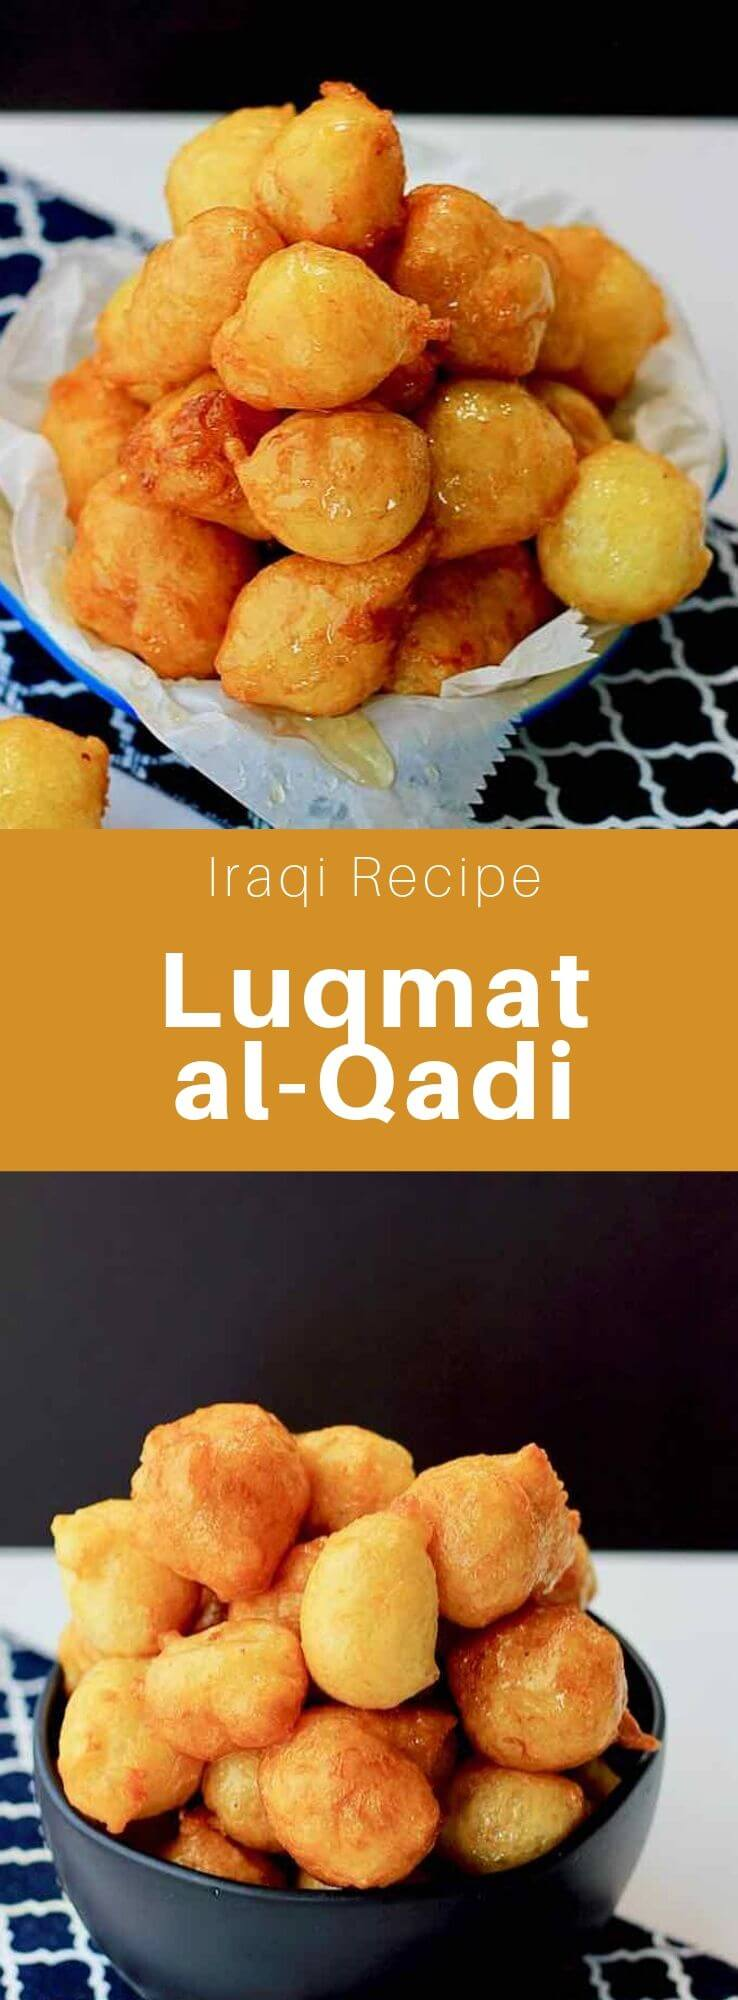 Luqmat al qadi (lokma or loukoumádes), is a pastry made from fried batter soaked in syrup, famous in the Gulf countries, Turkey and the Levant. #Iraq #IraqiCuisine #IraqiRecipe #MiddleEastern #WorldCuisine #196flavors